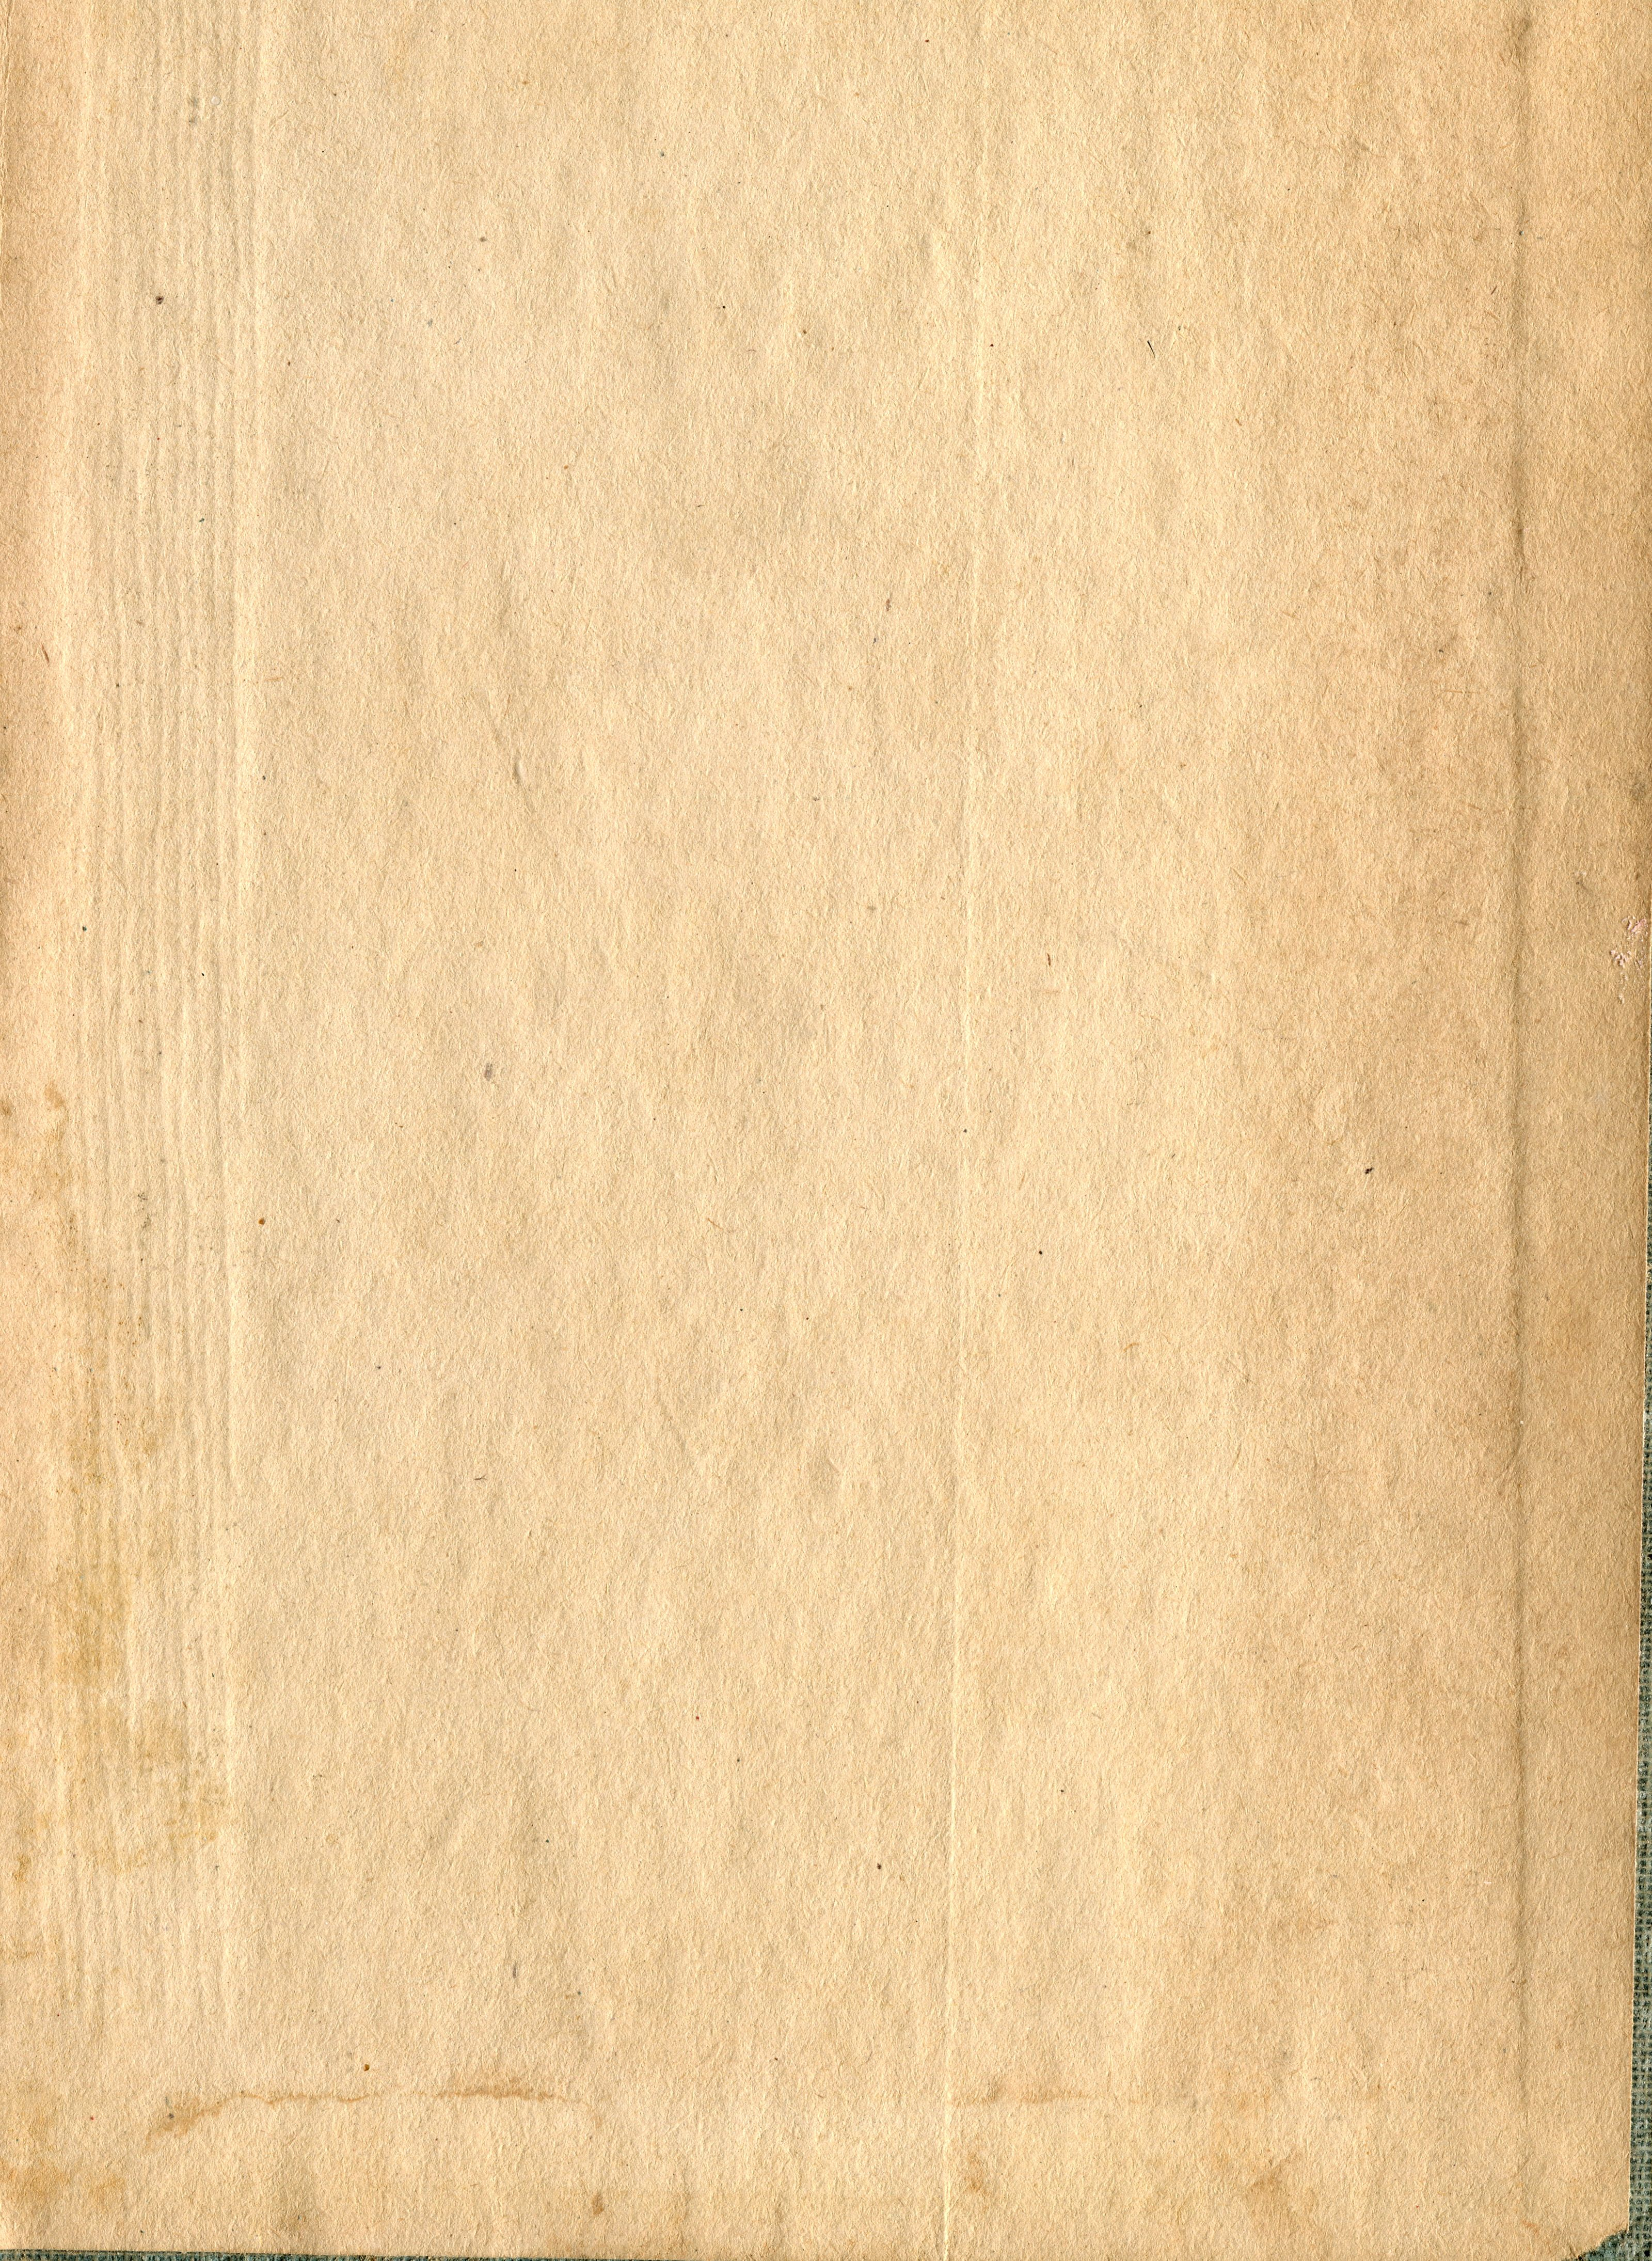 Free High Resolution Textures Gallery Vbooks3 Free Paper Texture Paper Texture Vintage Paper Textures